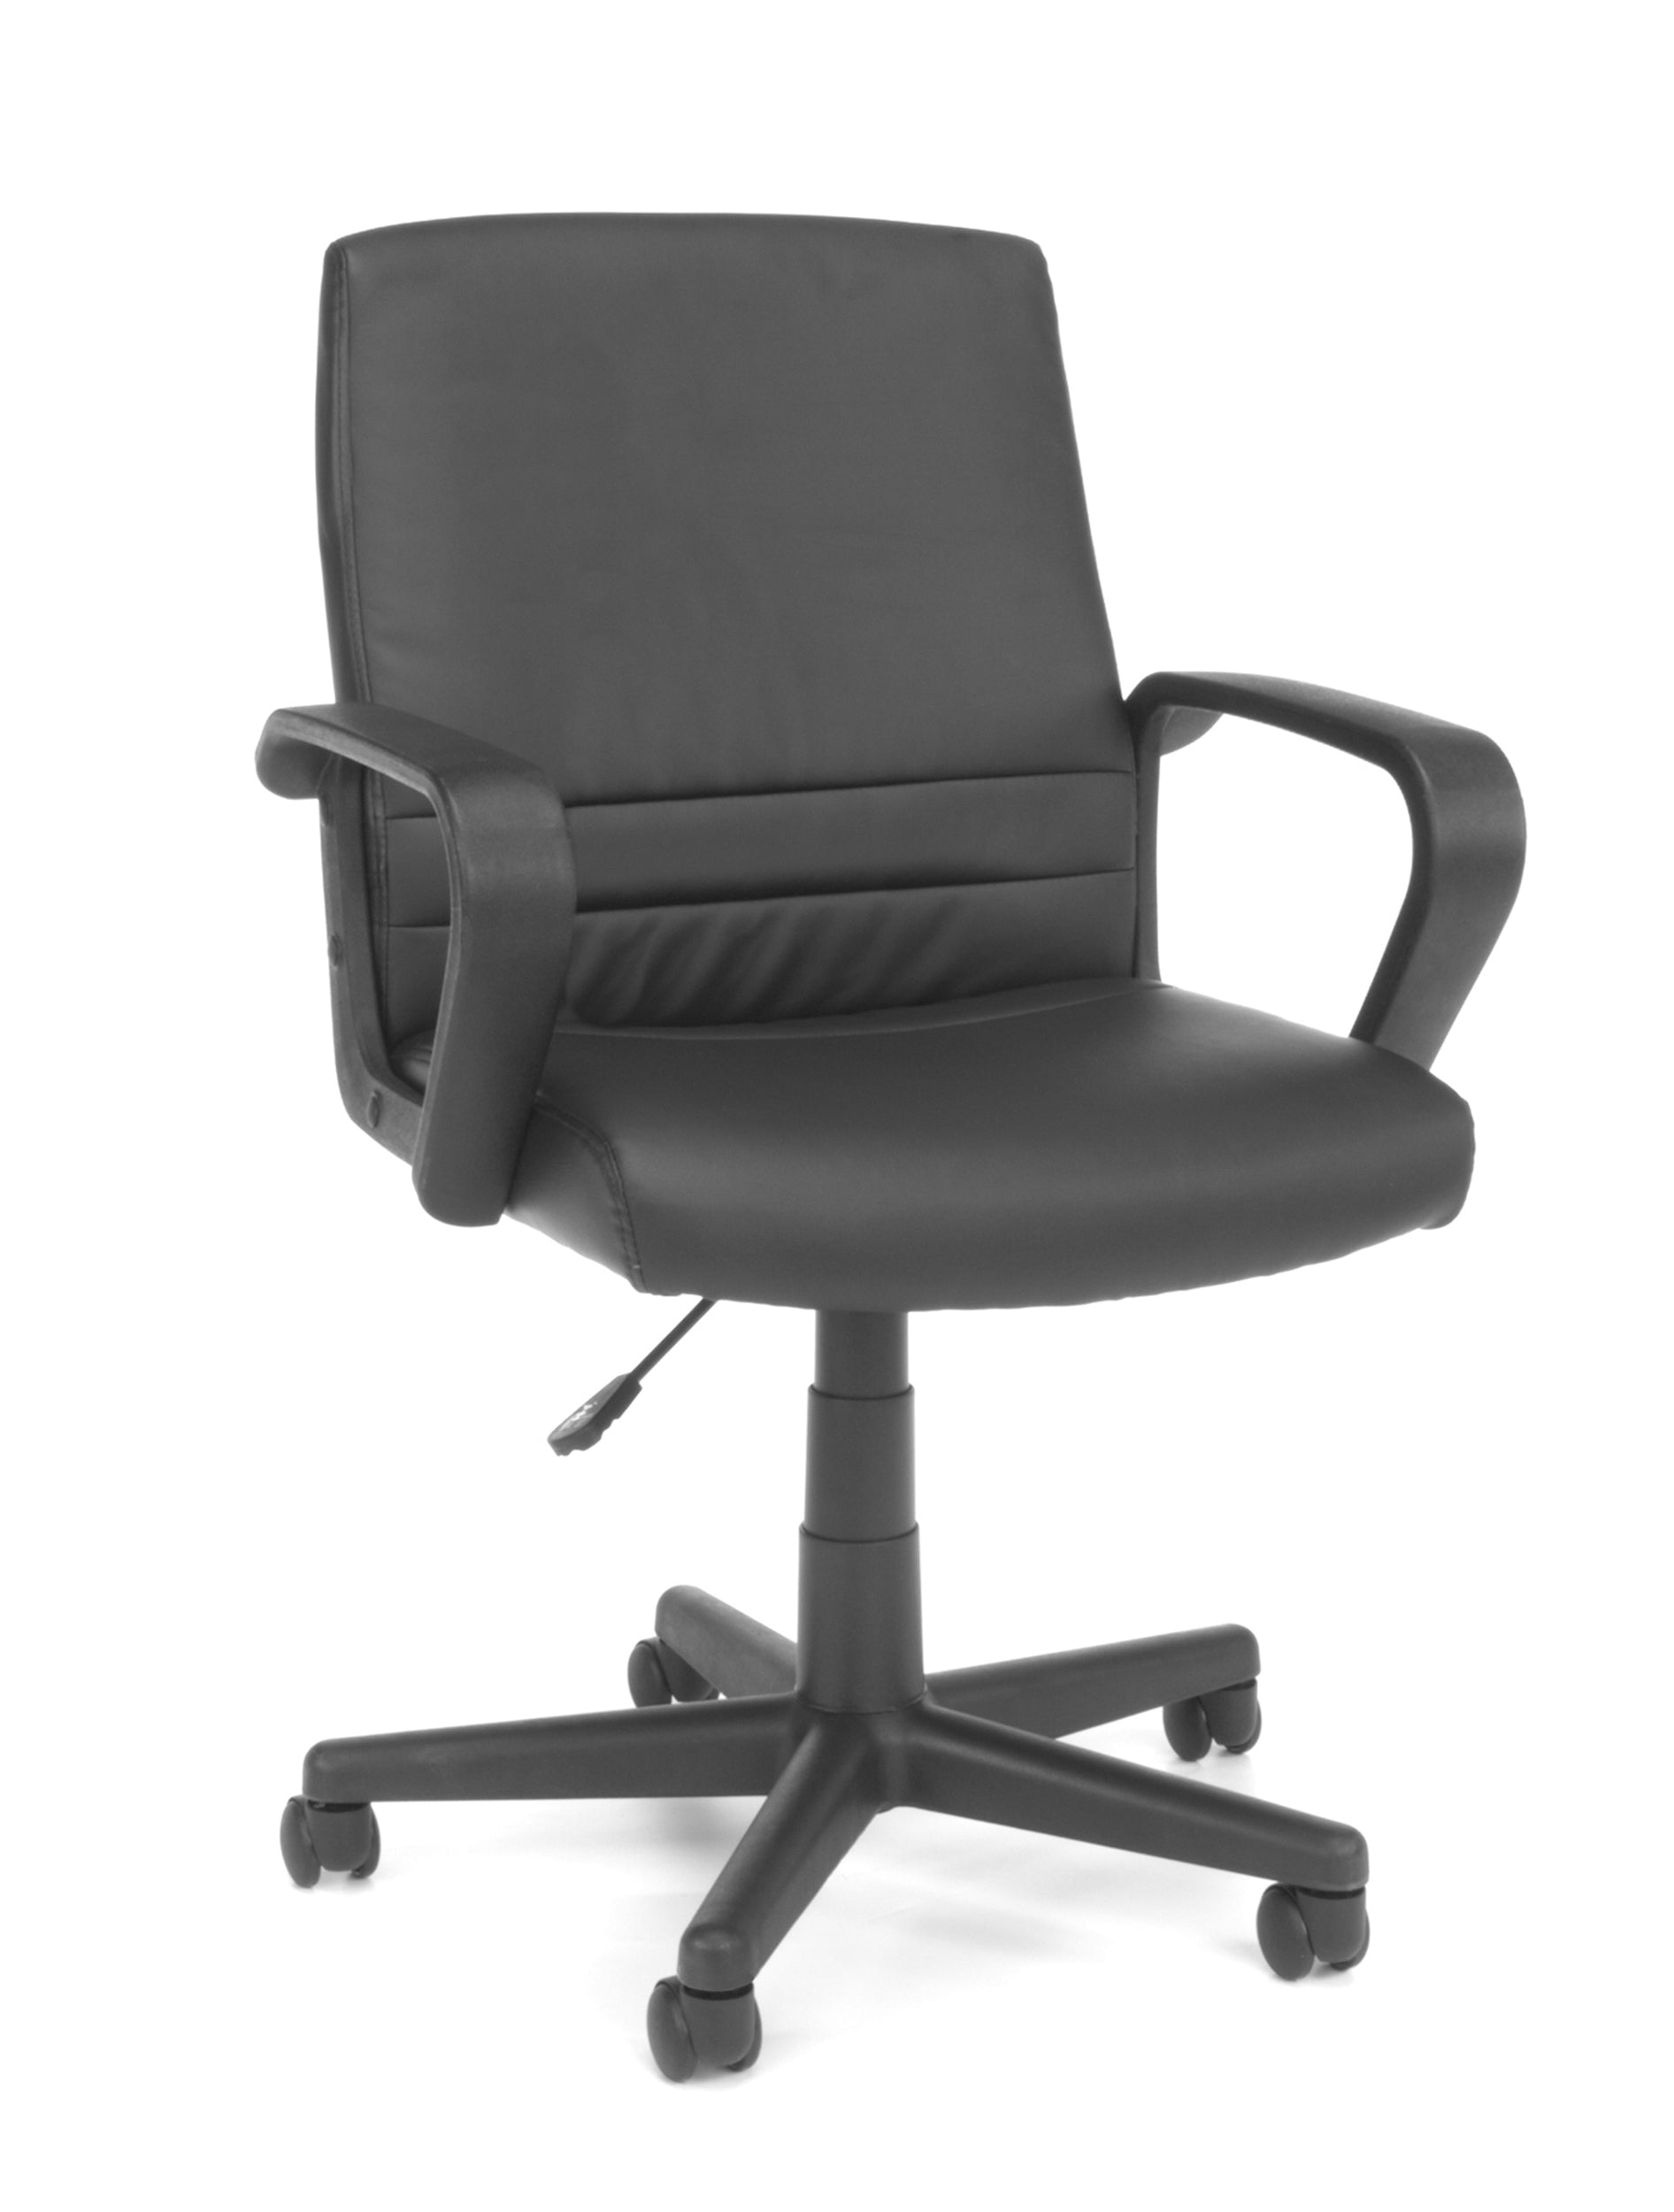 Model E1008 Essentials by OFM Executive Mid-Back Chair